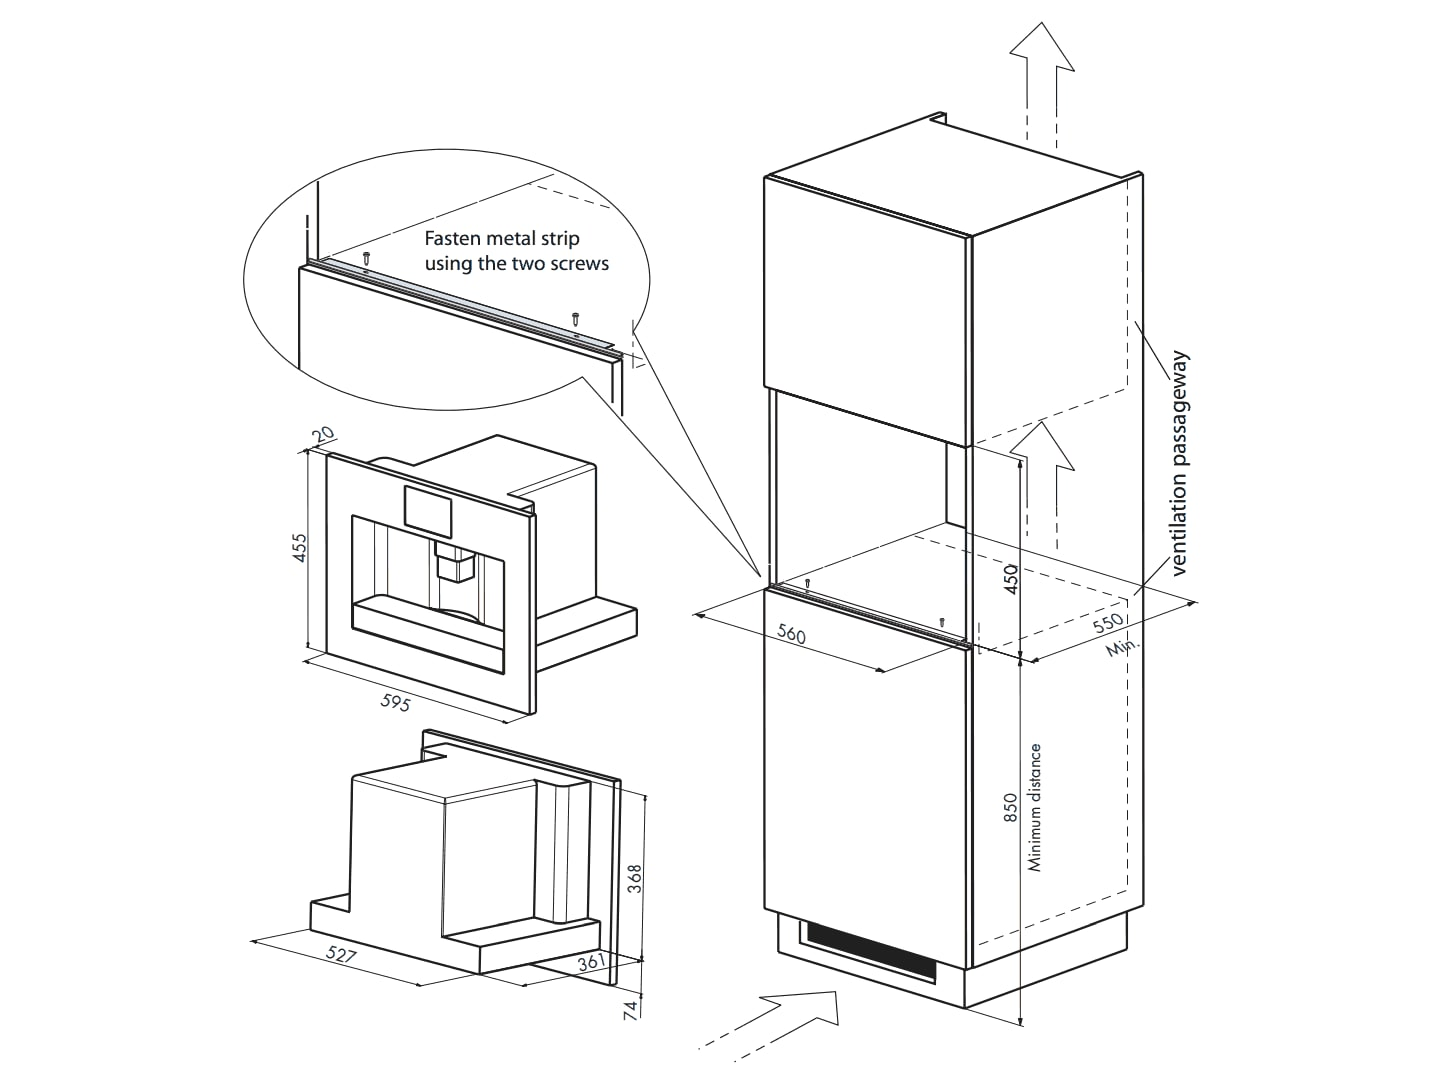 PrimaDonna EABI 6600 - Built-in Coffee Machine - Installation Diagram